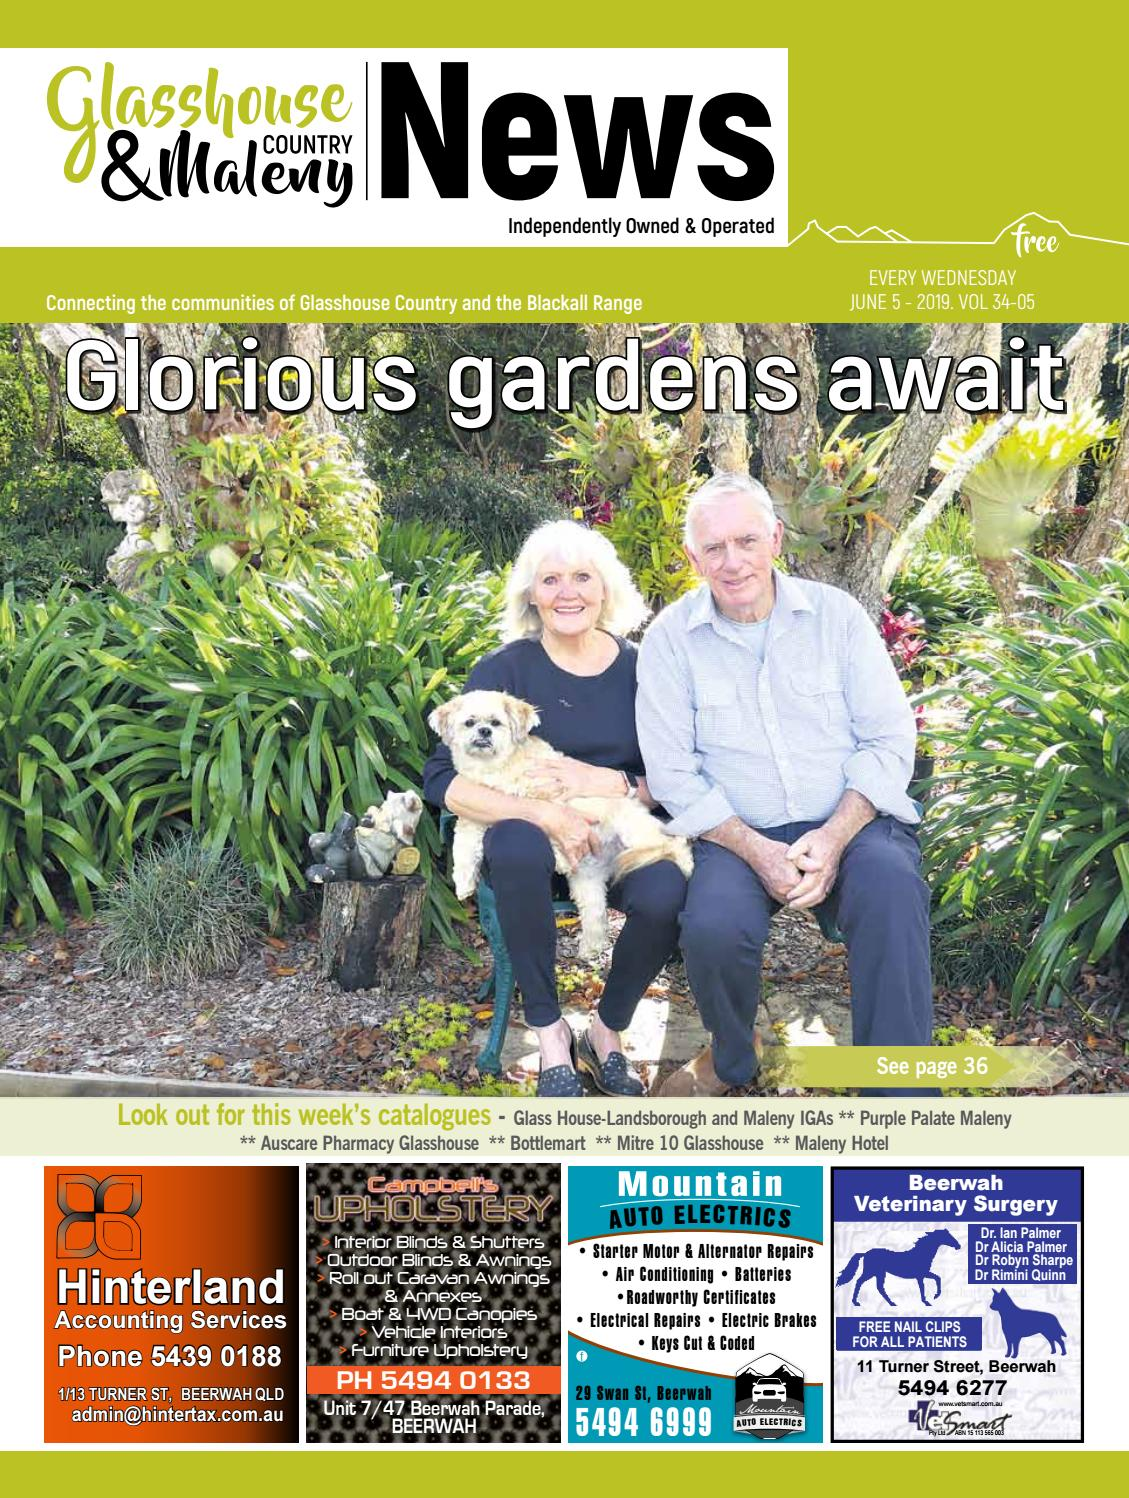 Edition 5 June 2019 by Glasshouse Country & Maleny News - issuu